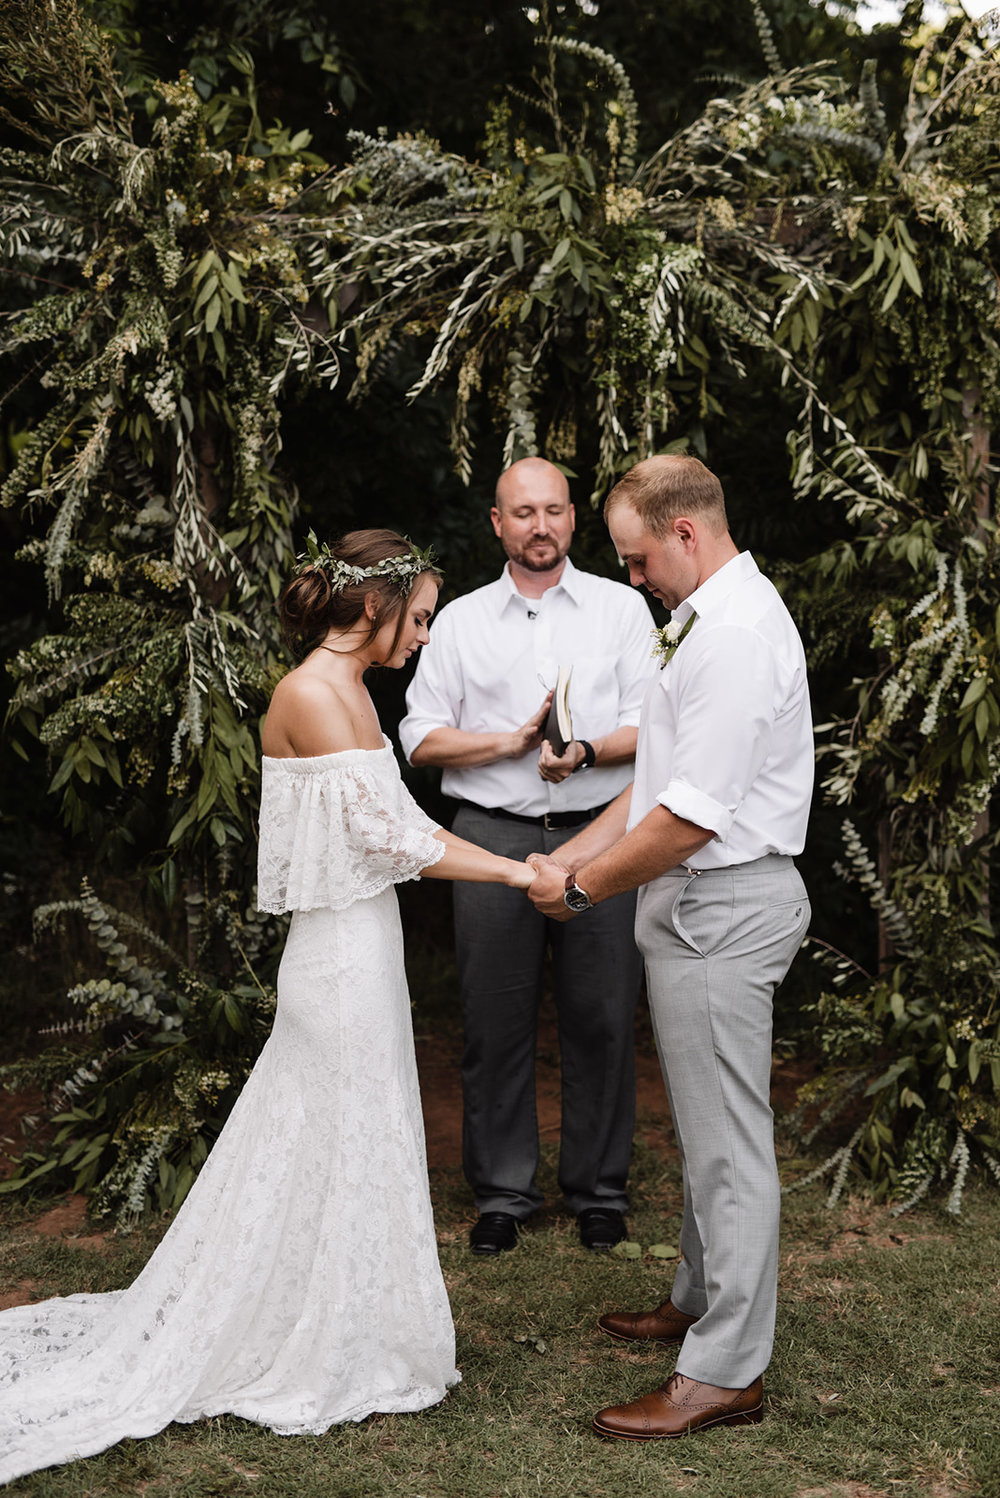 Alexa + Matt - June 1, 2018